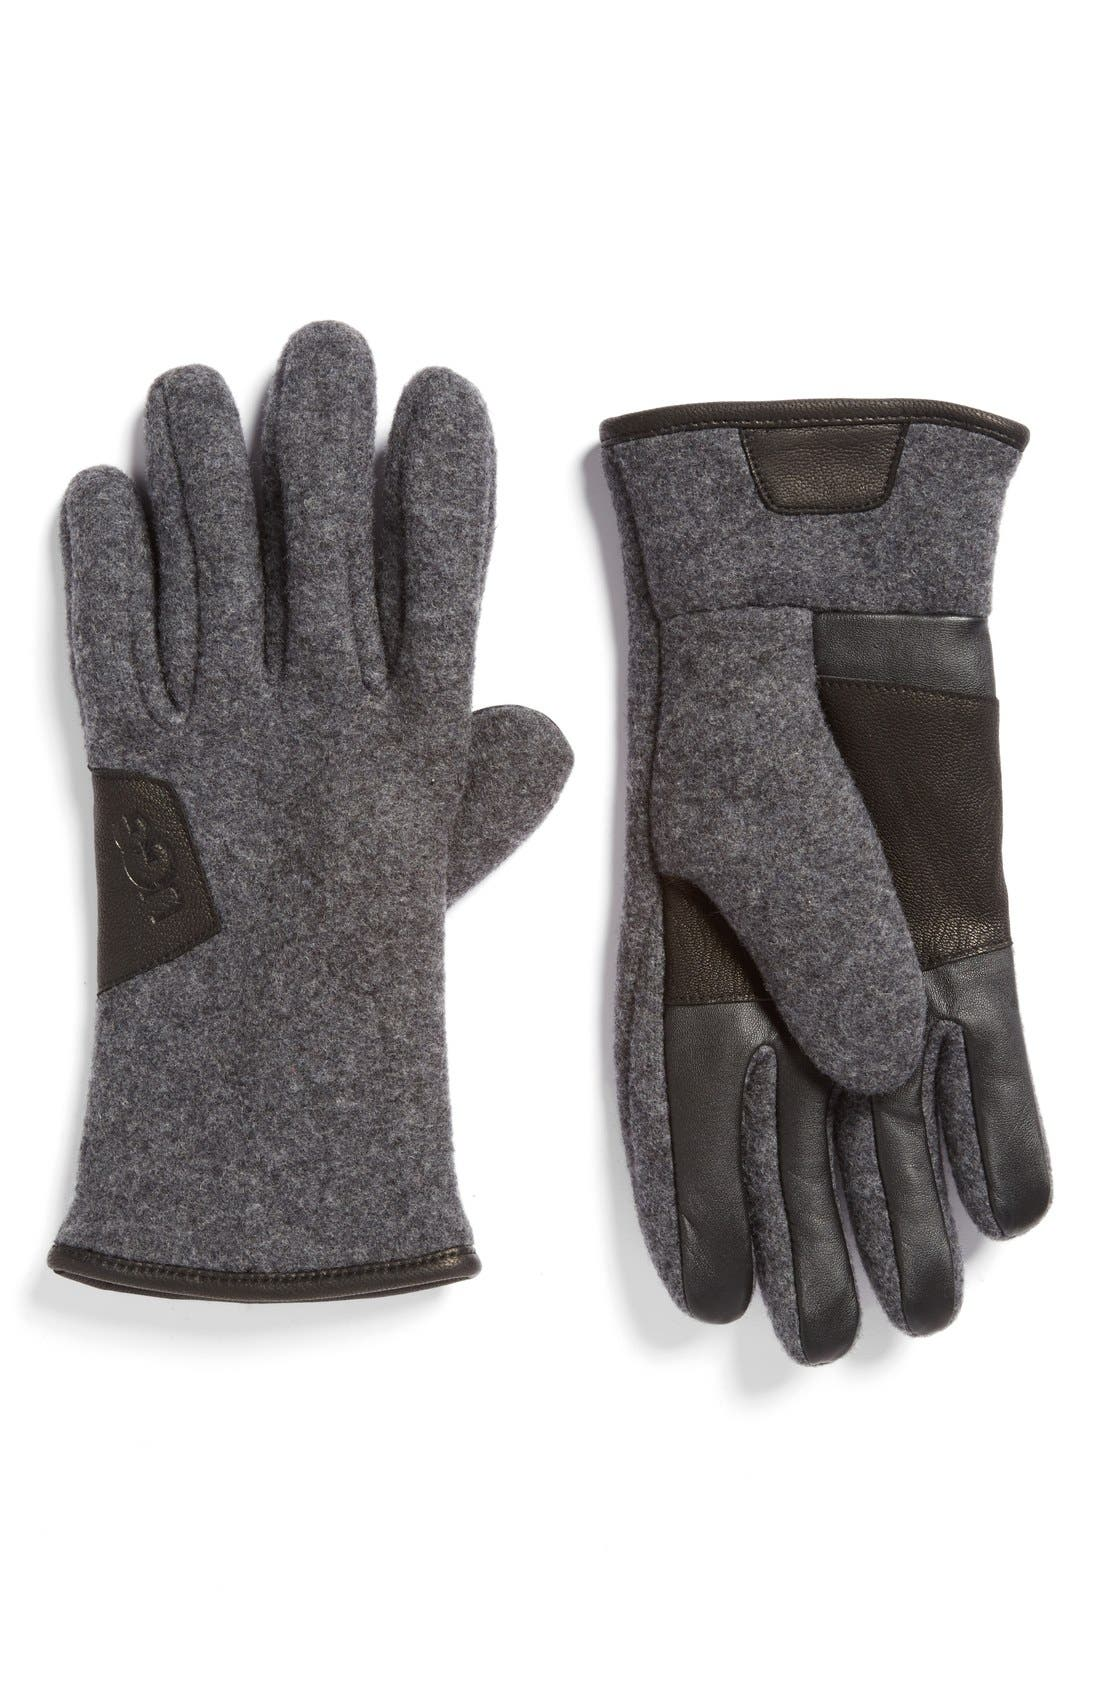 Wool Blend Tech Gloves,                         Main,                         color, Charcoal